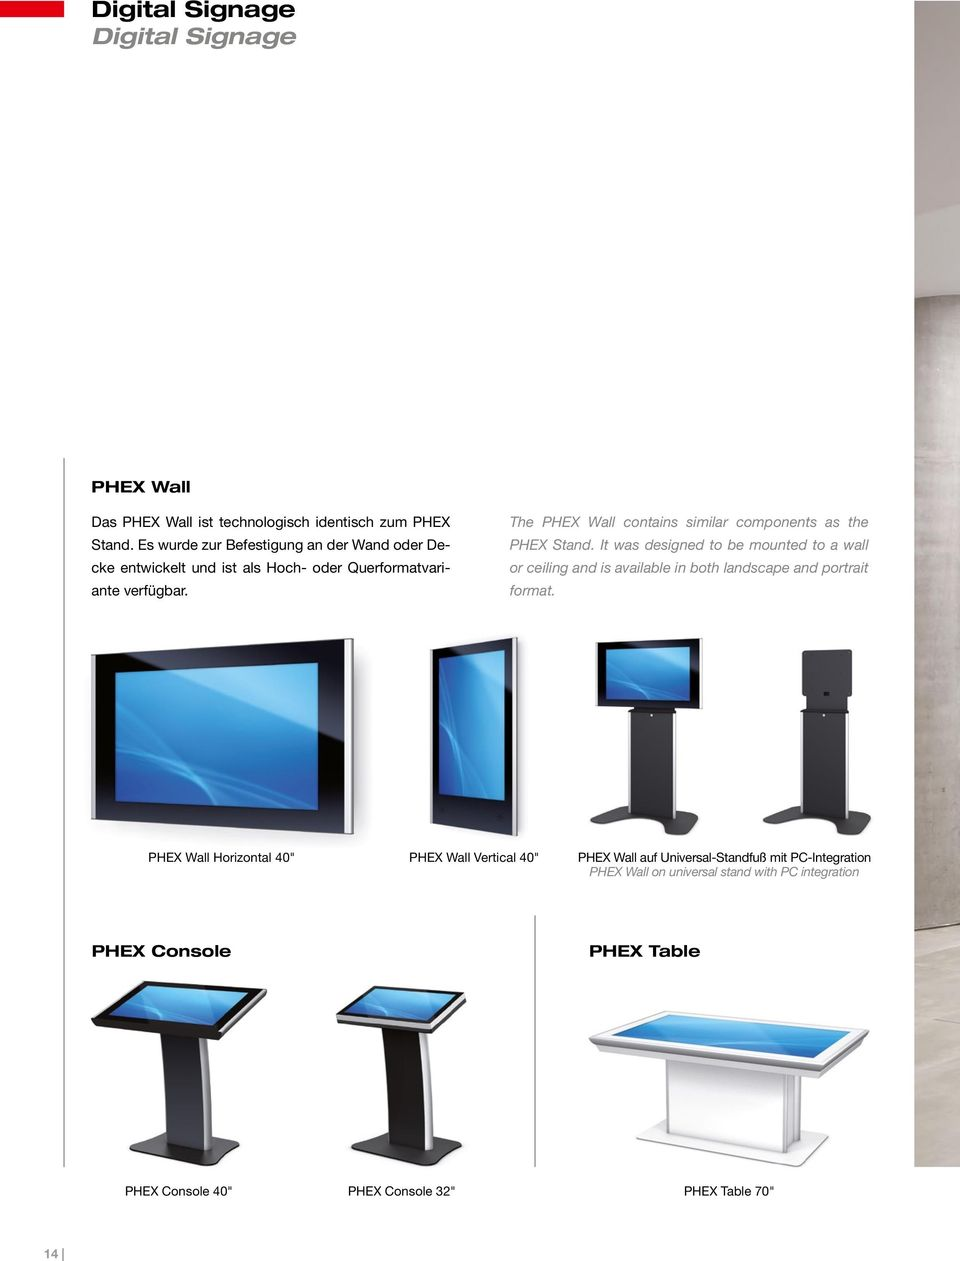 The PHEX Wall contains similar components as the PHEX Stand.